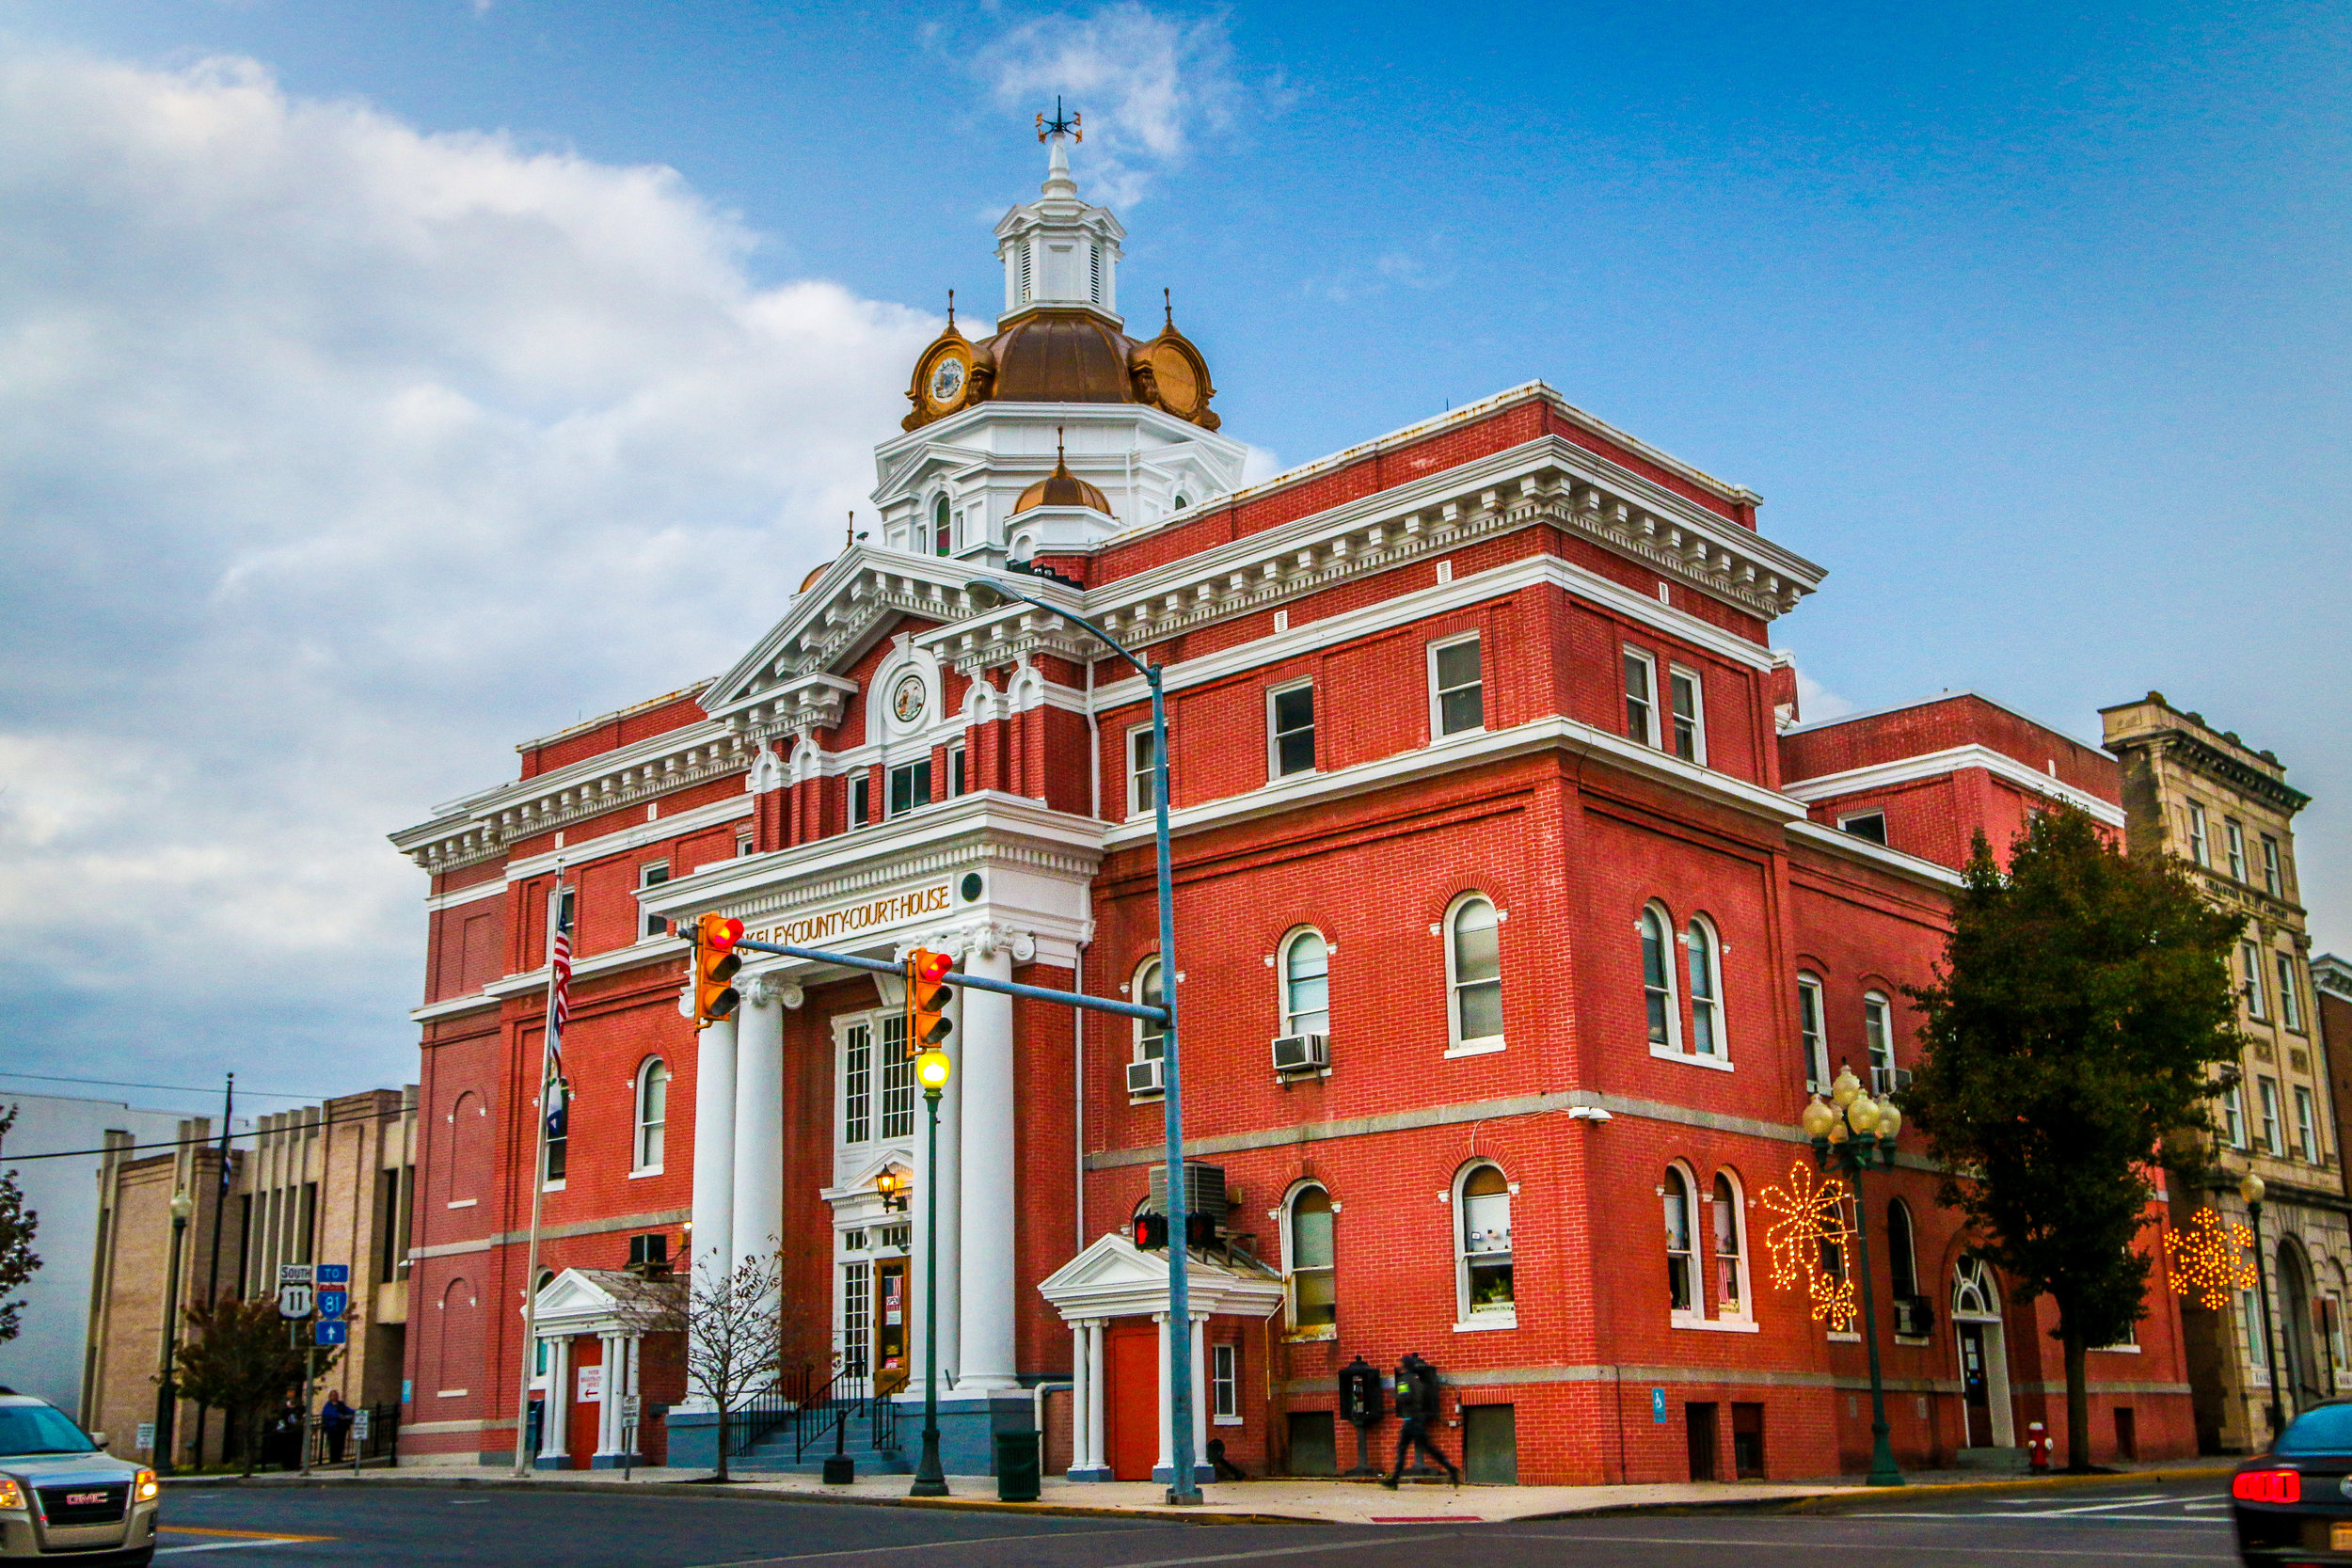 Berkeley County Courthouse, Martinsburg